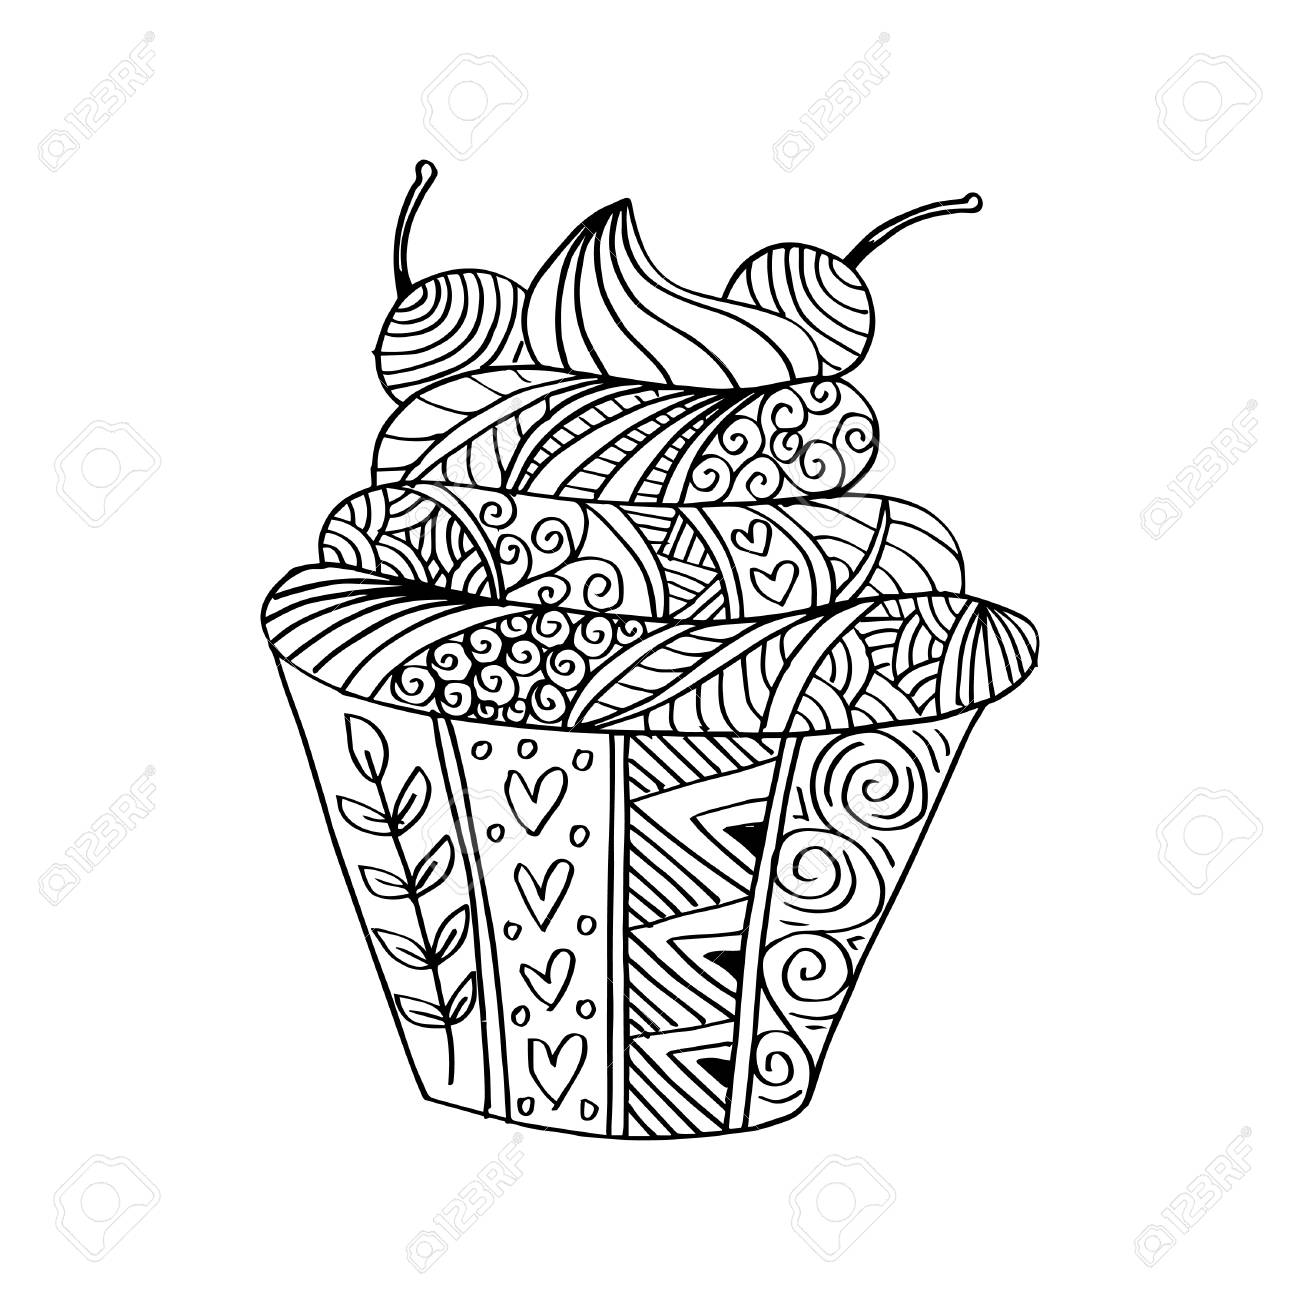 Coloring Page With Cupcake Royalty Free Cliparts Vectors And Stock